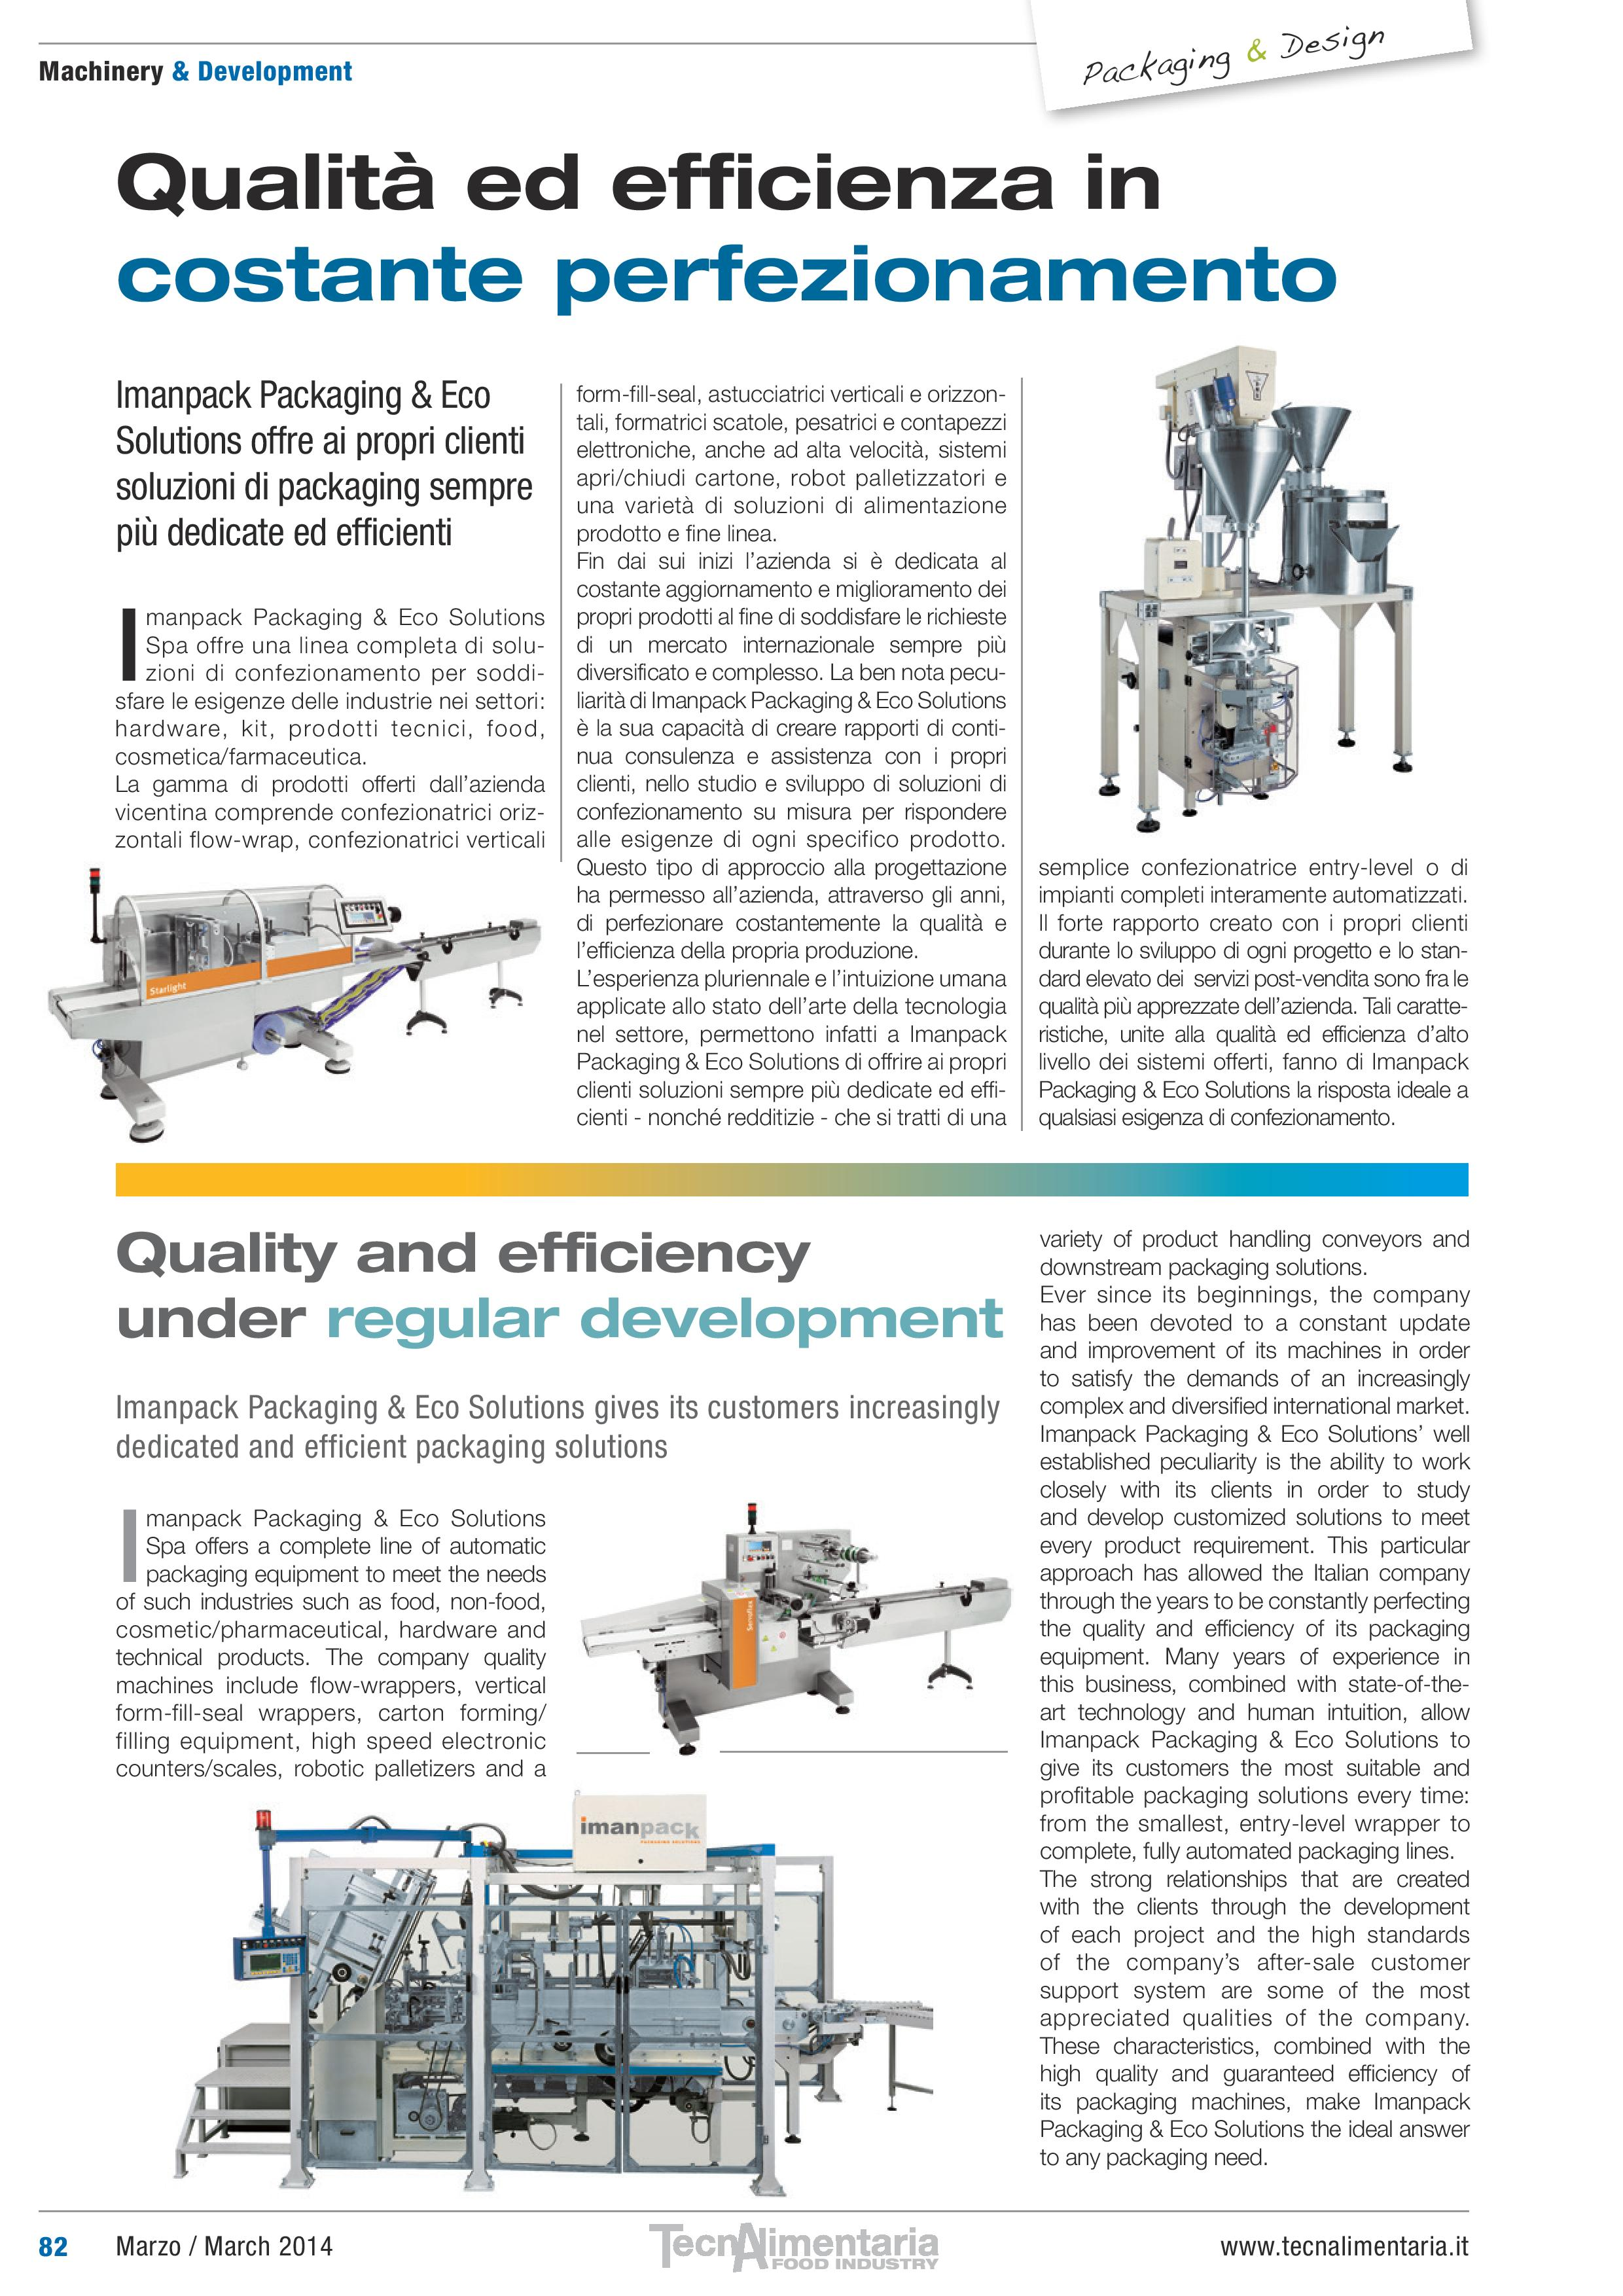 "A press release published in the Italian food specialized magazine called TecnoAlimentaria  exited in March 2014  on ""machinery & Development""  section."